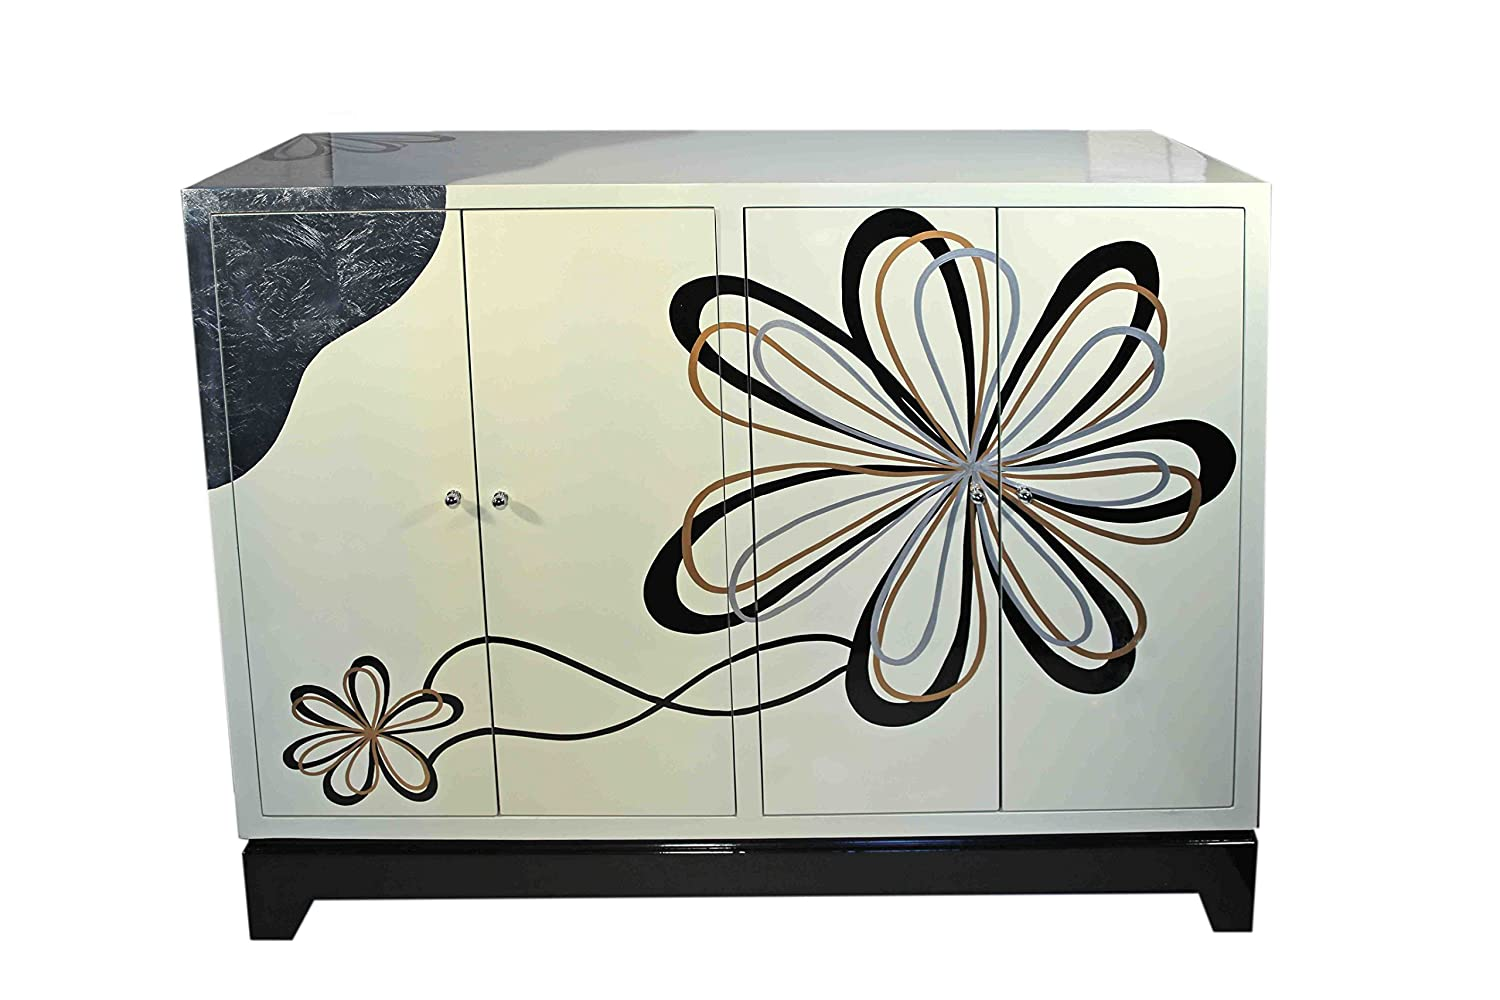 Casa Collection / Art for living by Jänig 11469 Sideboard Modern Flower, 4-türig, 102 x 122 x 45